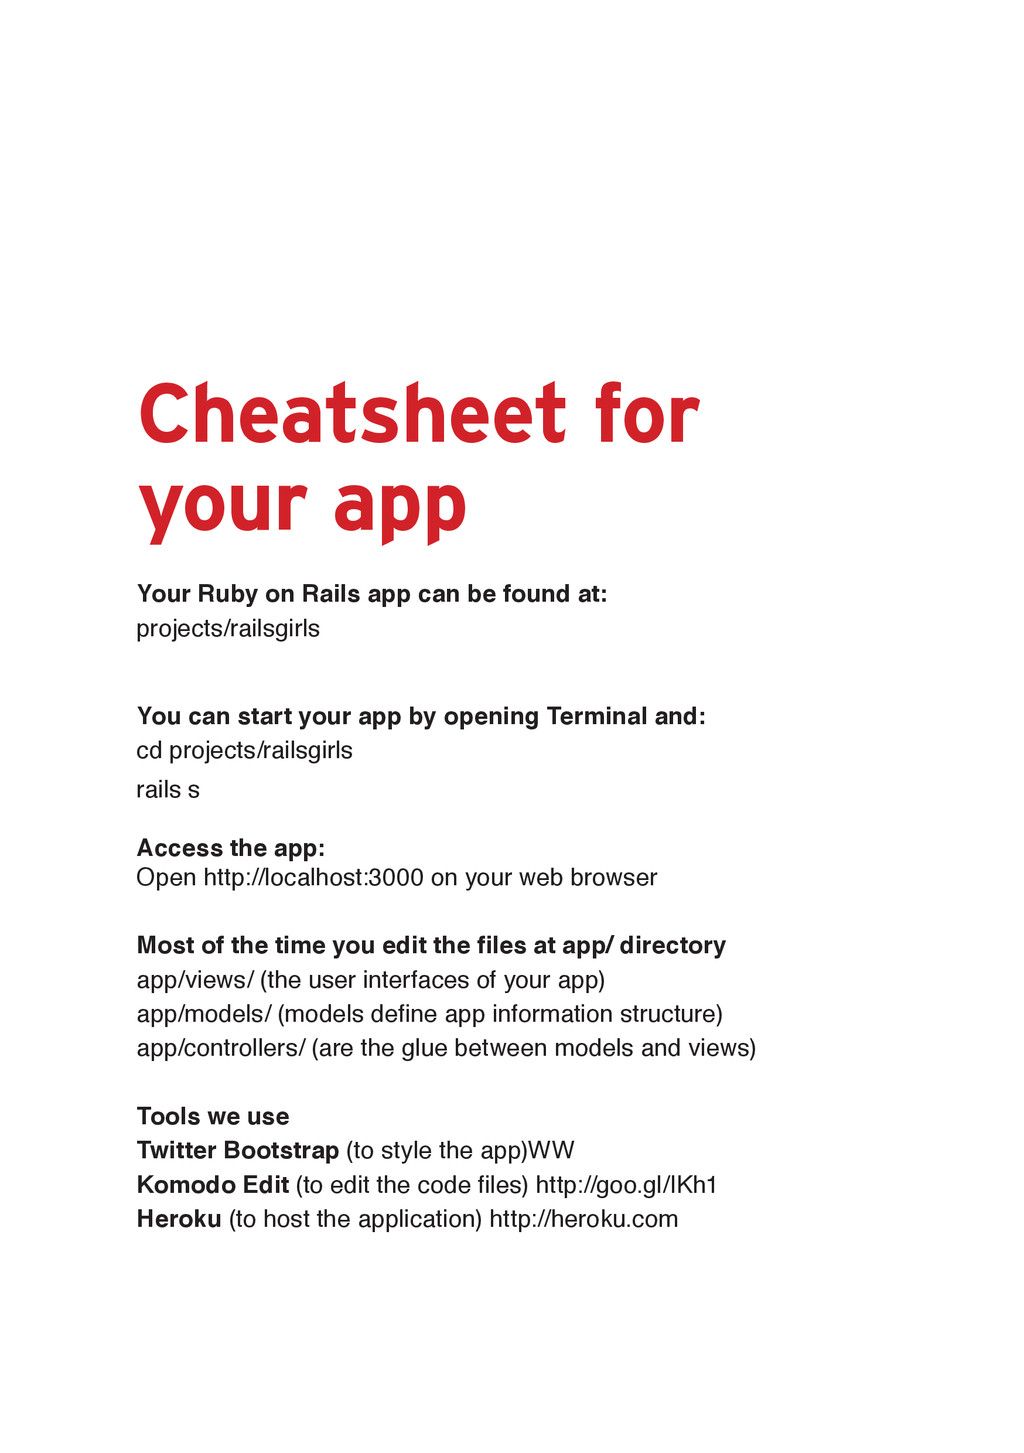 Cheatsheet for your app <RXU5XE\RQ5DLOVDSS...